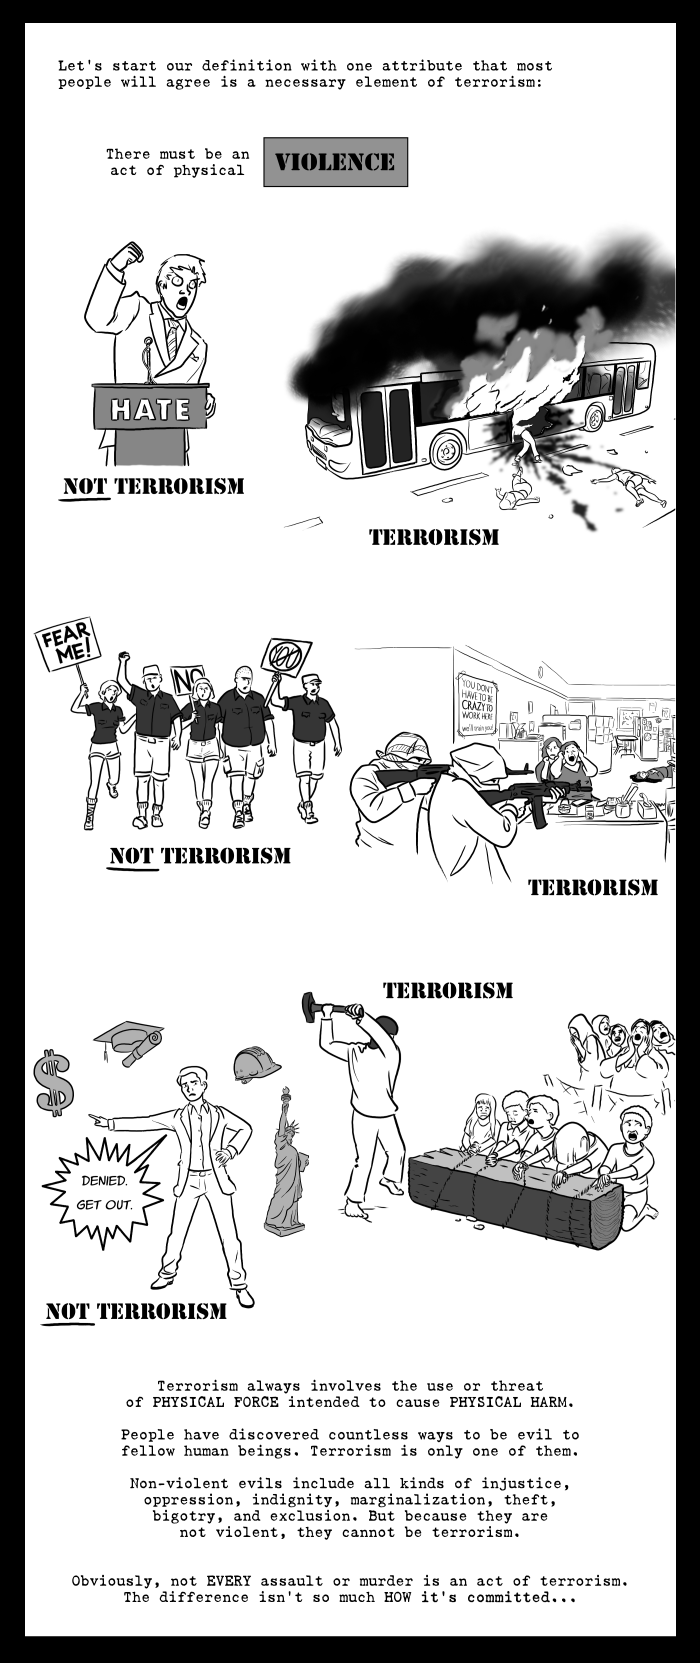 Most people will agree that physical violence is a necessary element of terrorism.